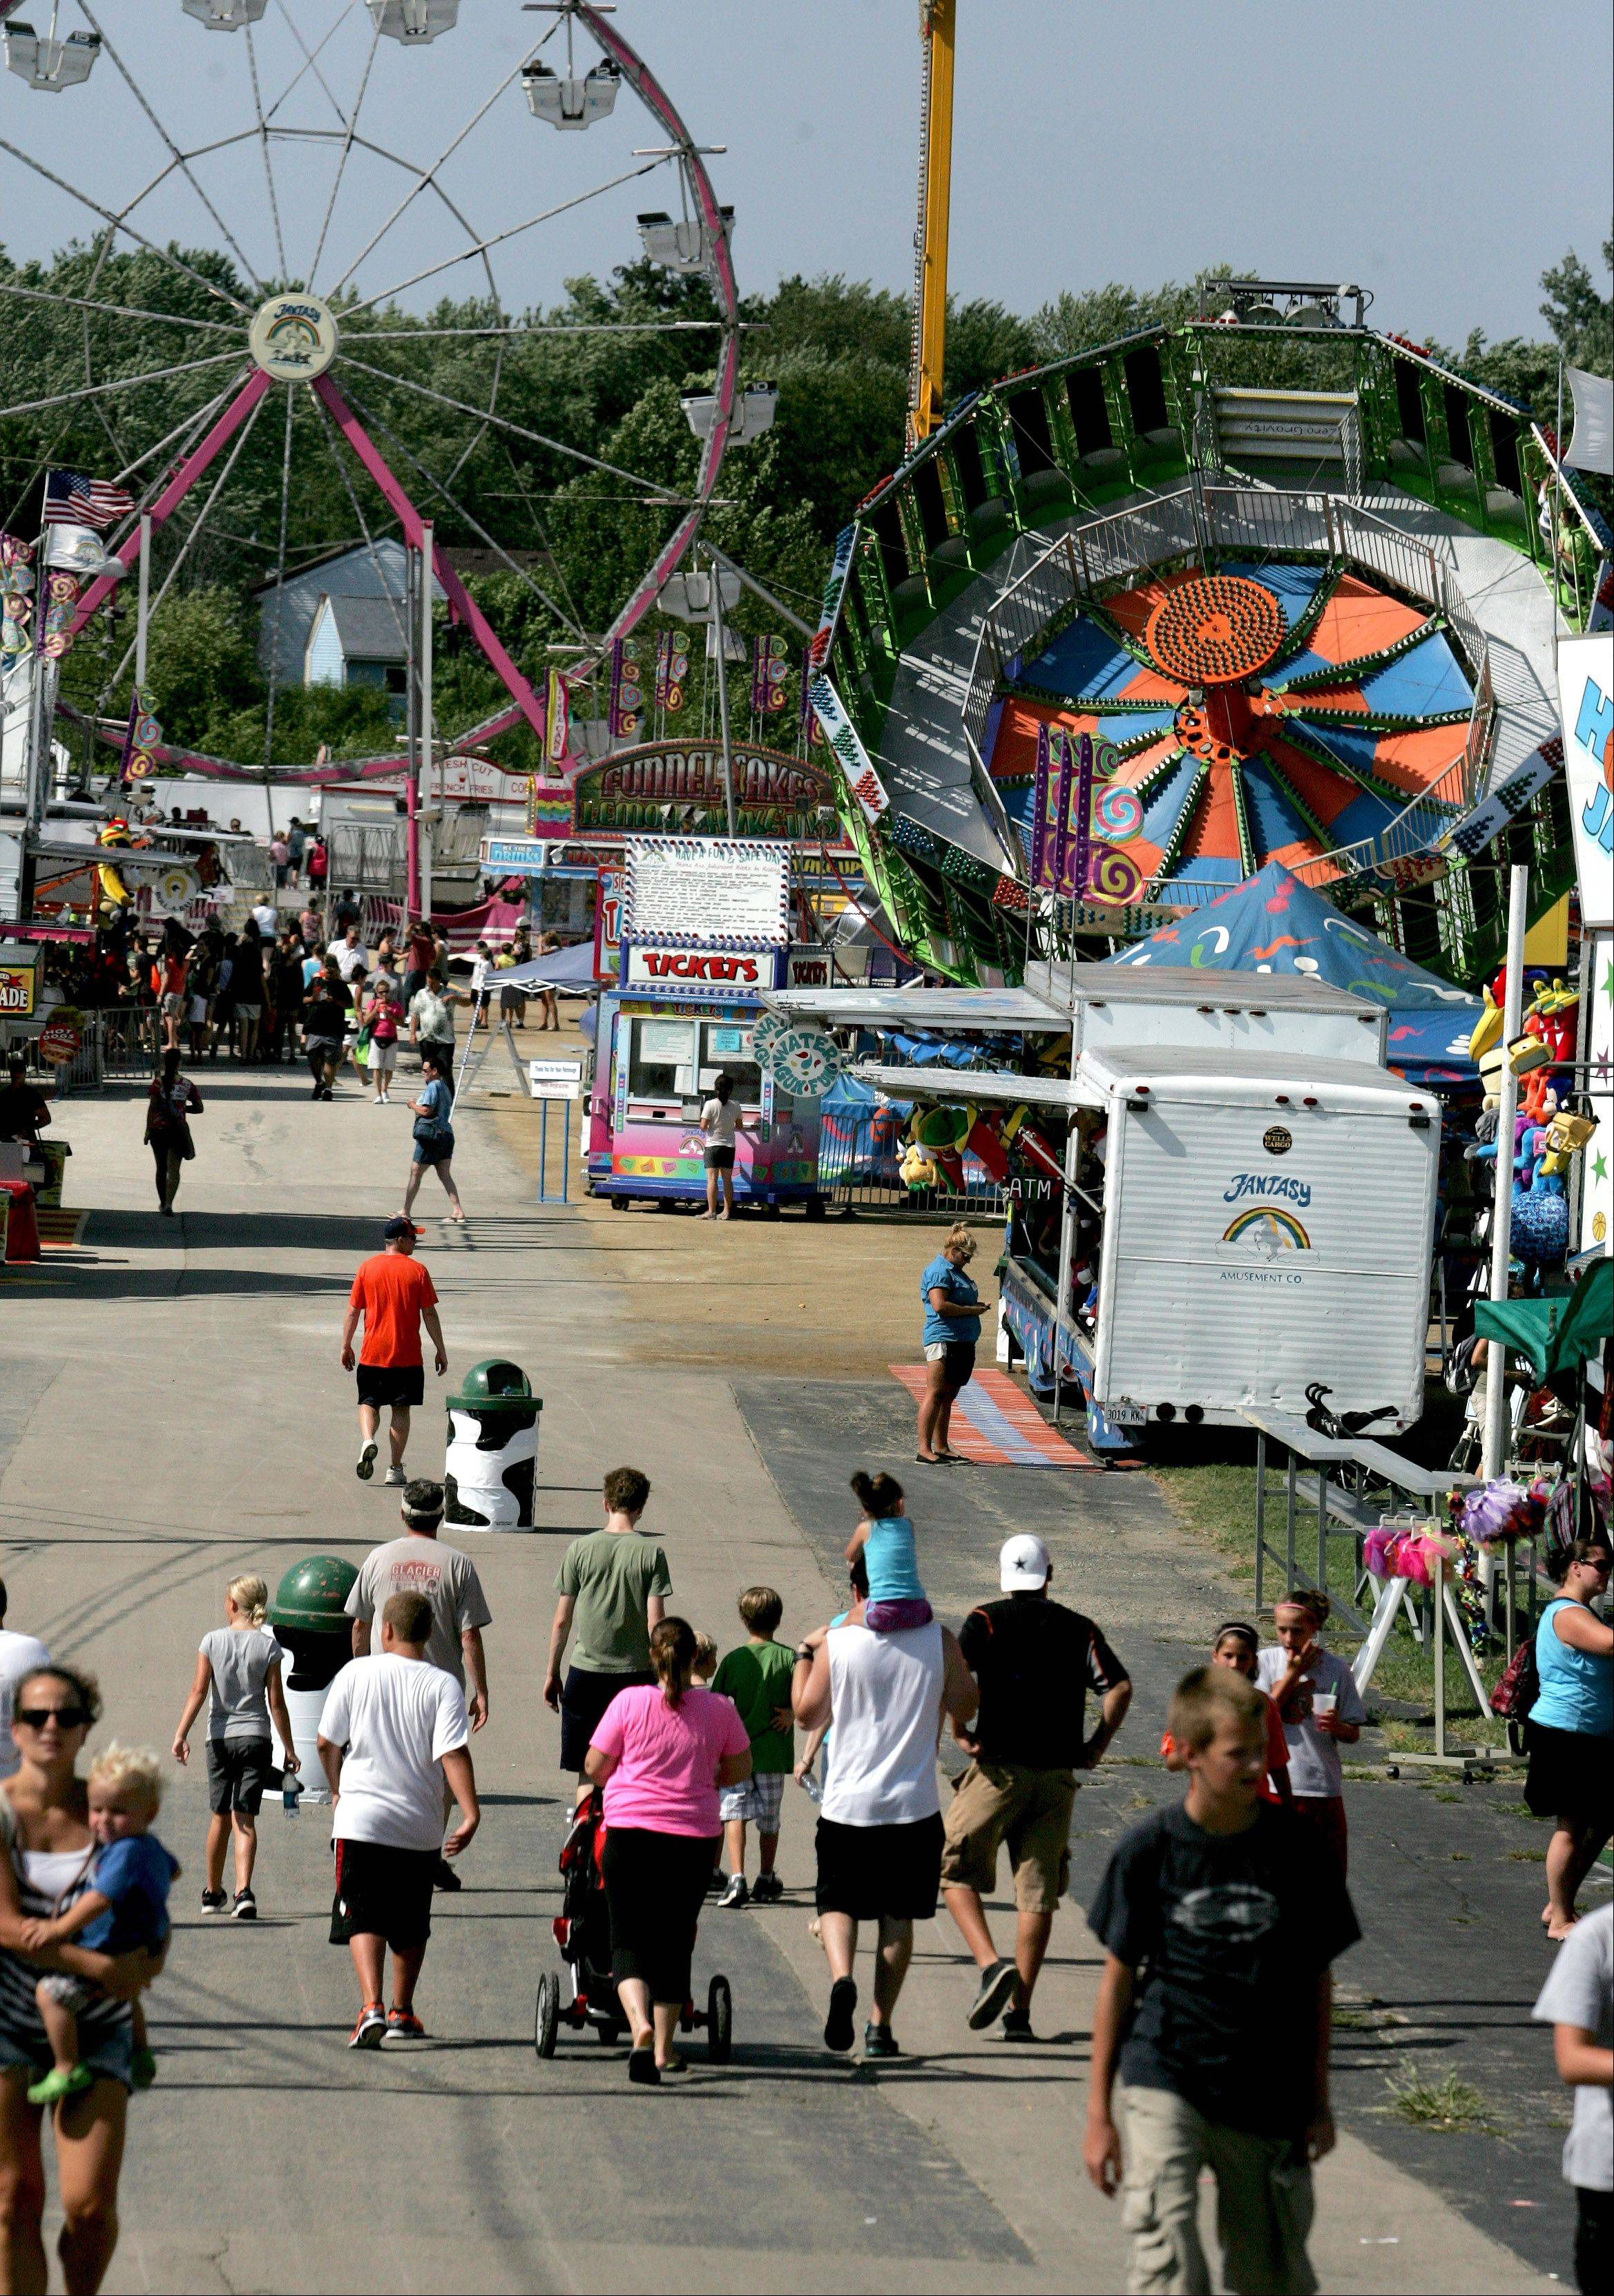 The opening day of the DuPage County Fair in Wheaton on Wednesday.